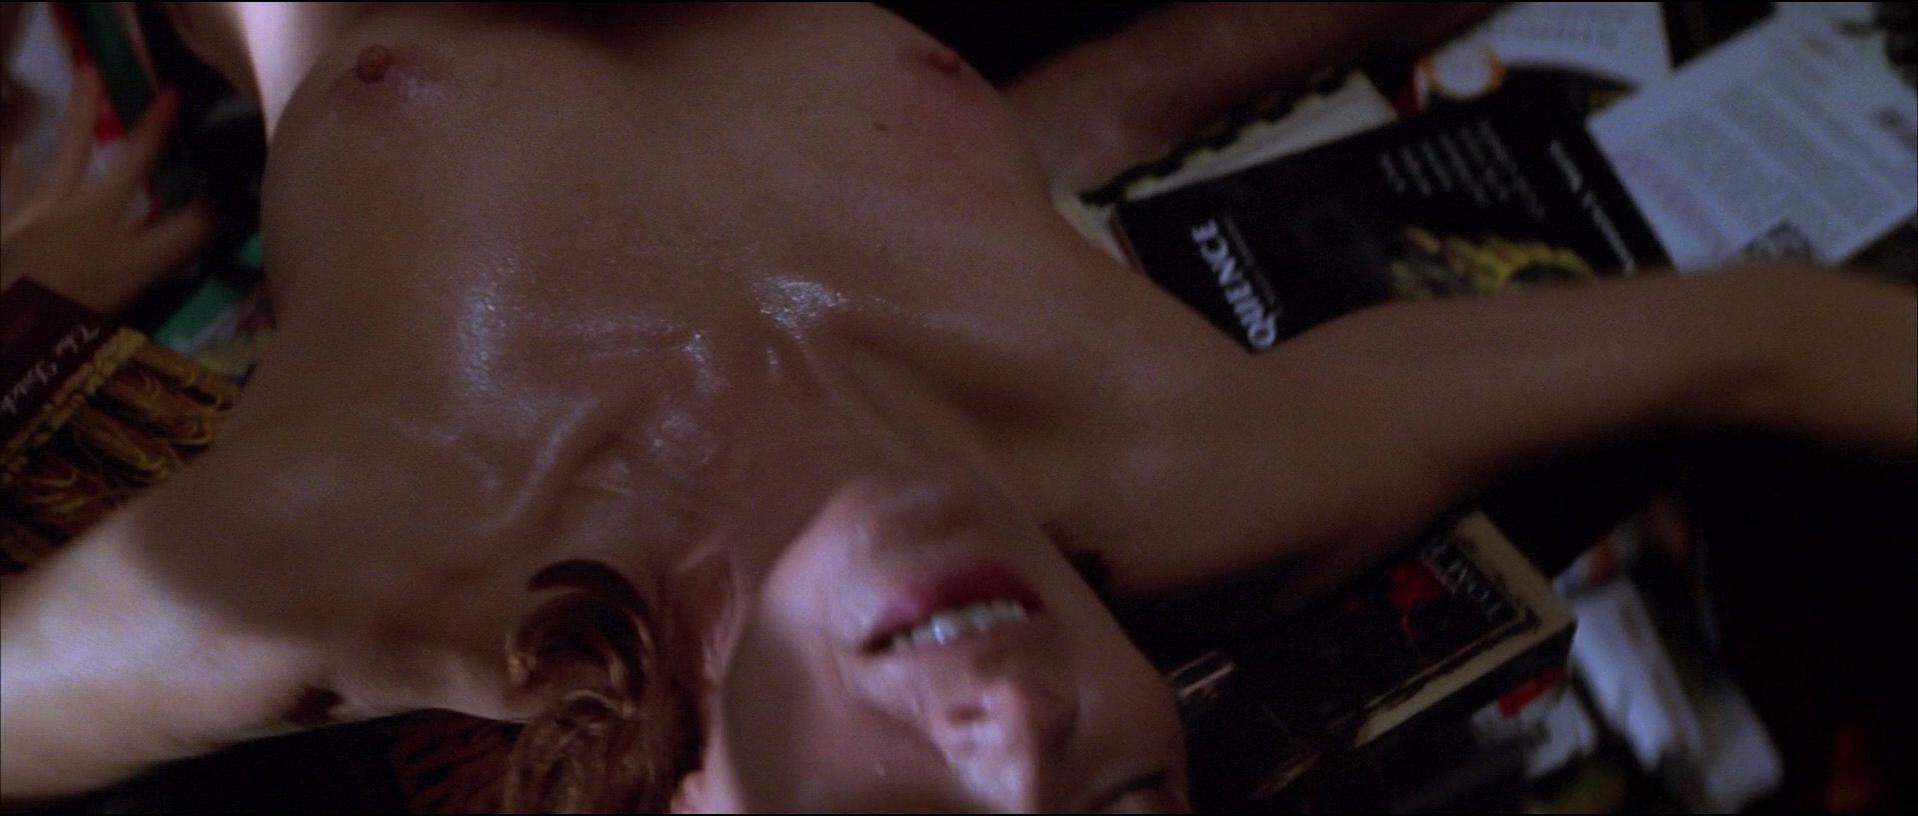 Thomas crown affair sex scene